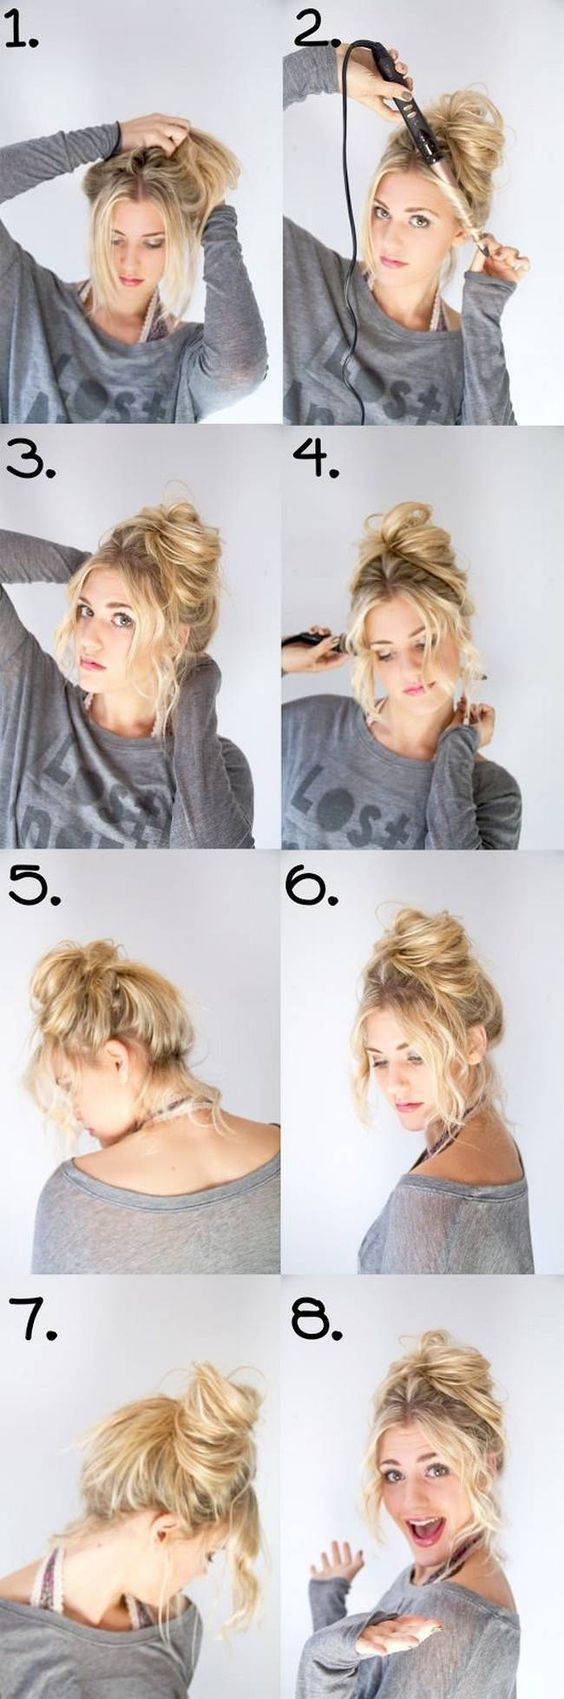 12 Super Cool Hairstyle Ideas for Women with Short Thick Hair ...